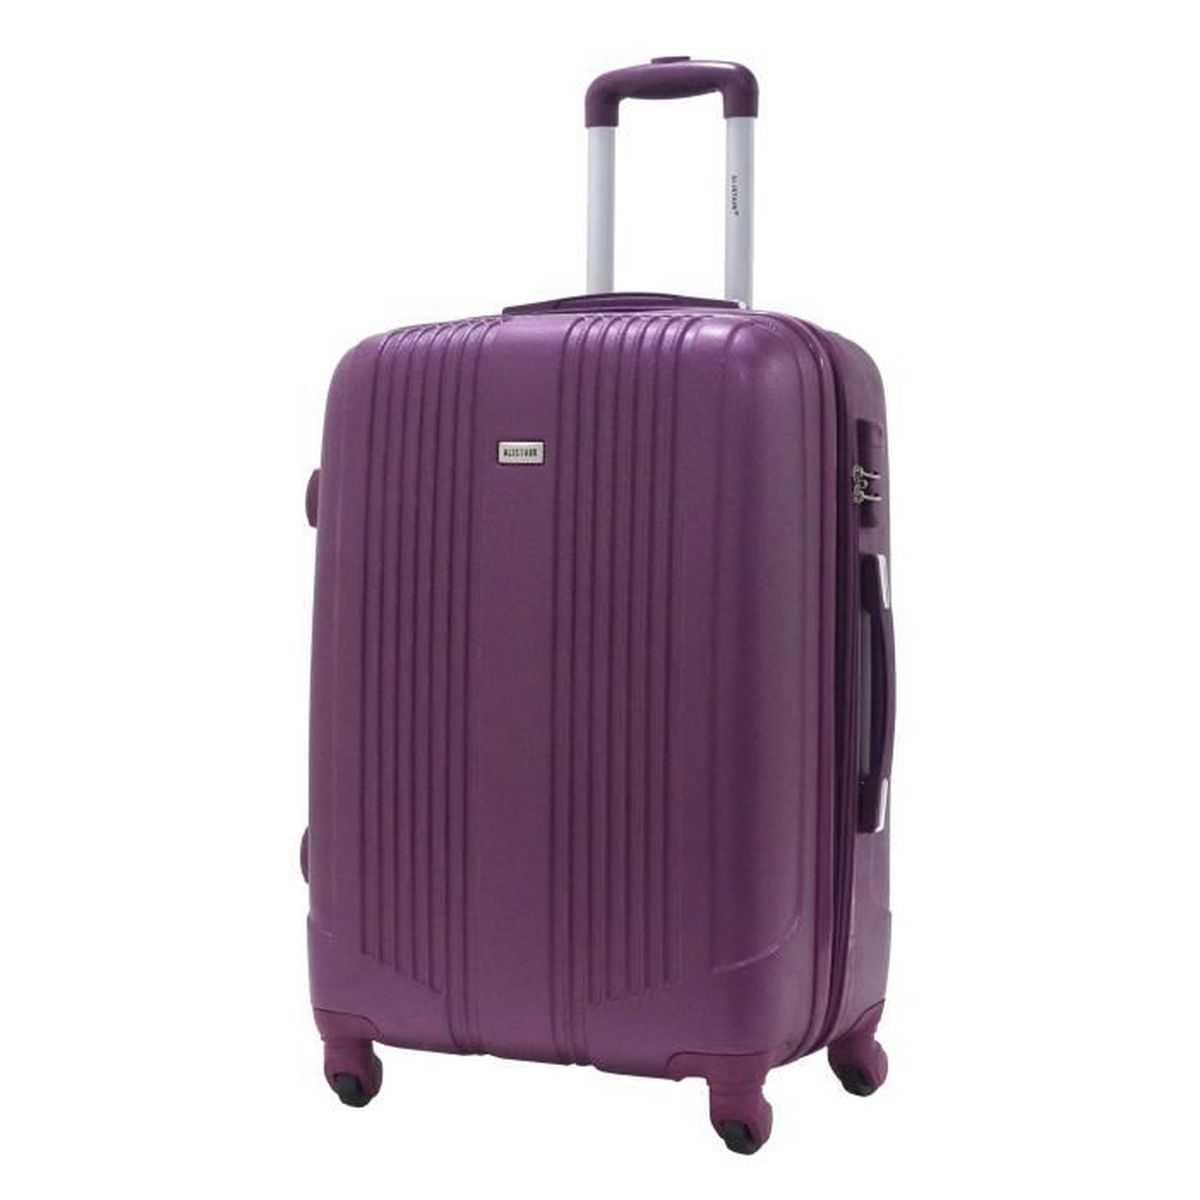 Valise taille moyenne 65cm alistair airo abs violet - Valise a prix discount ...